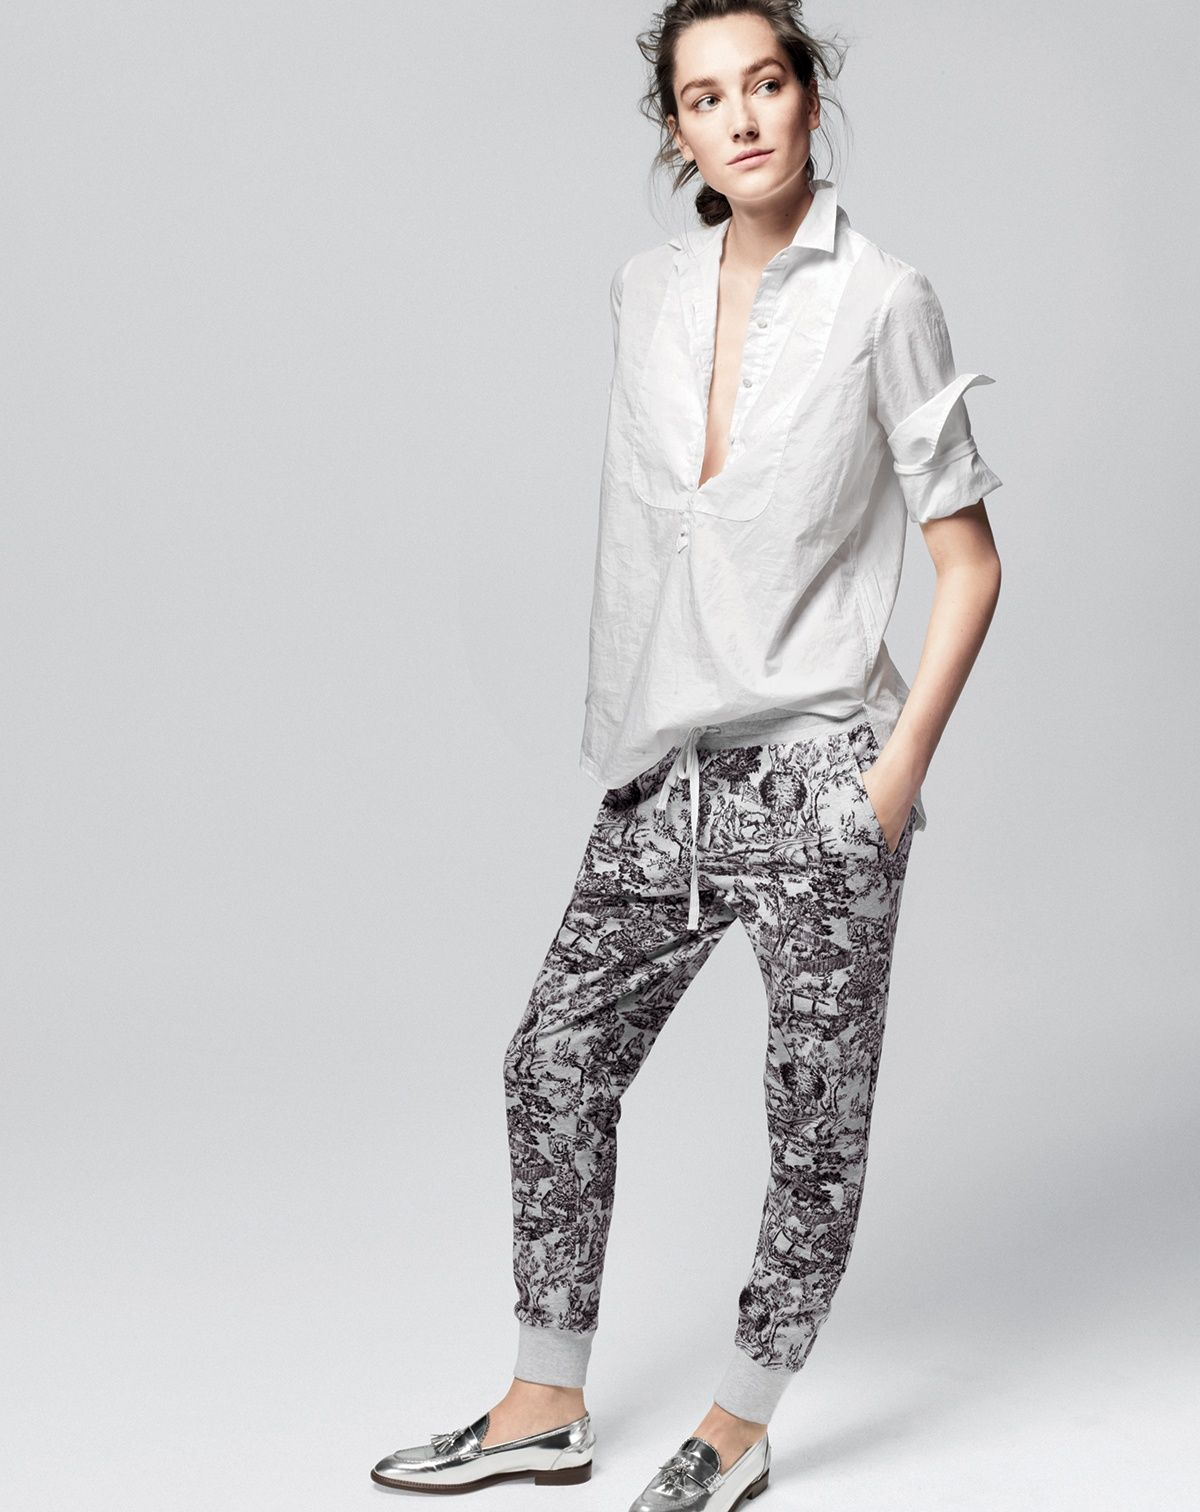 Shoes with Sweatpants-20 Shoes Women Can Wear With Sweatpant